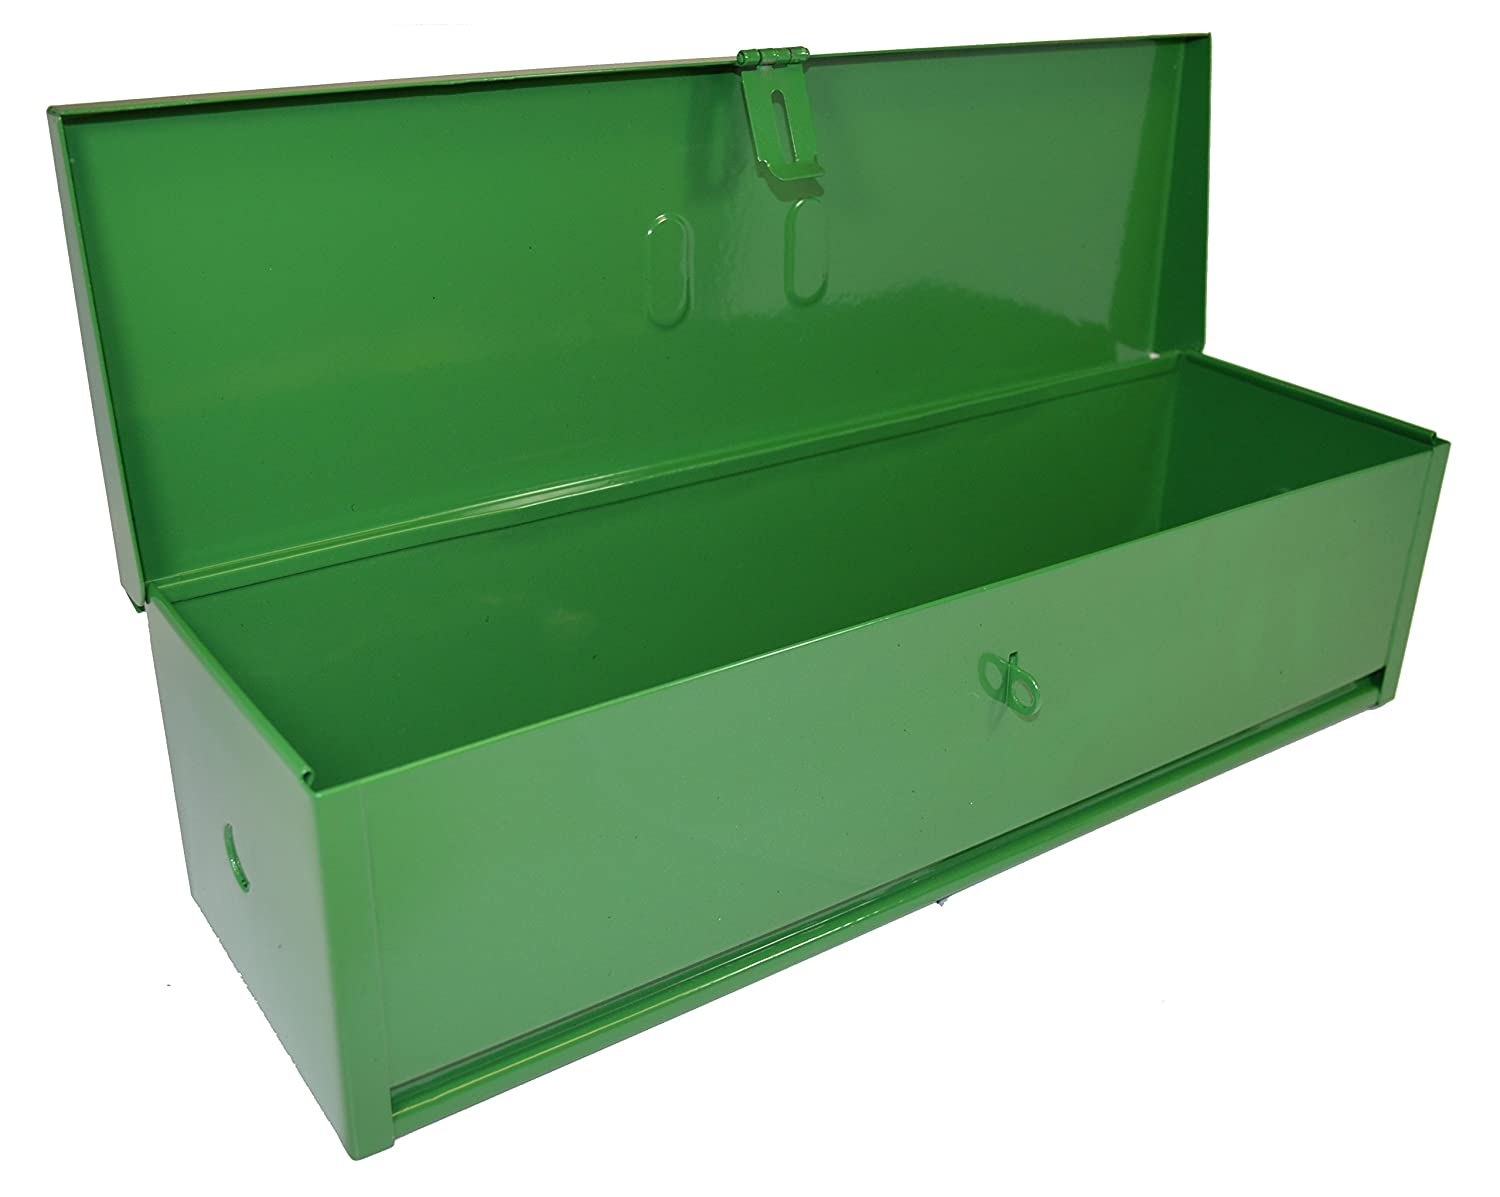 Mounting Hardware Included Green RanchEx 102423 Tool Box Portable for Trucks//Tractors 16